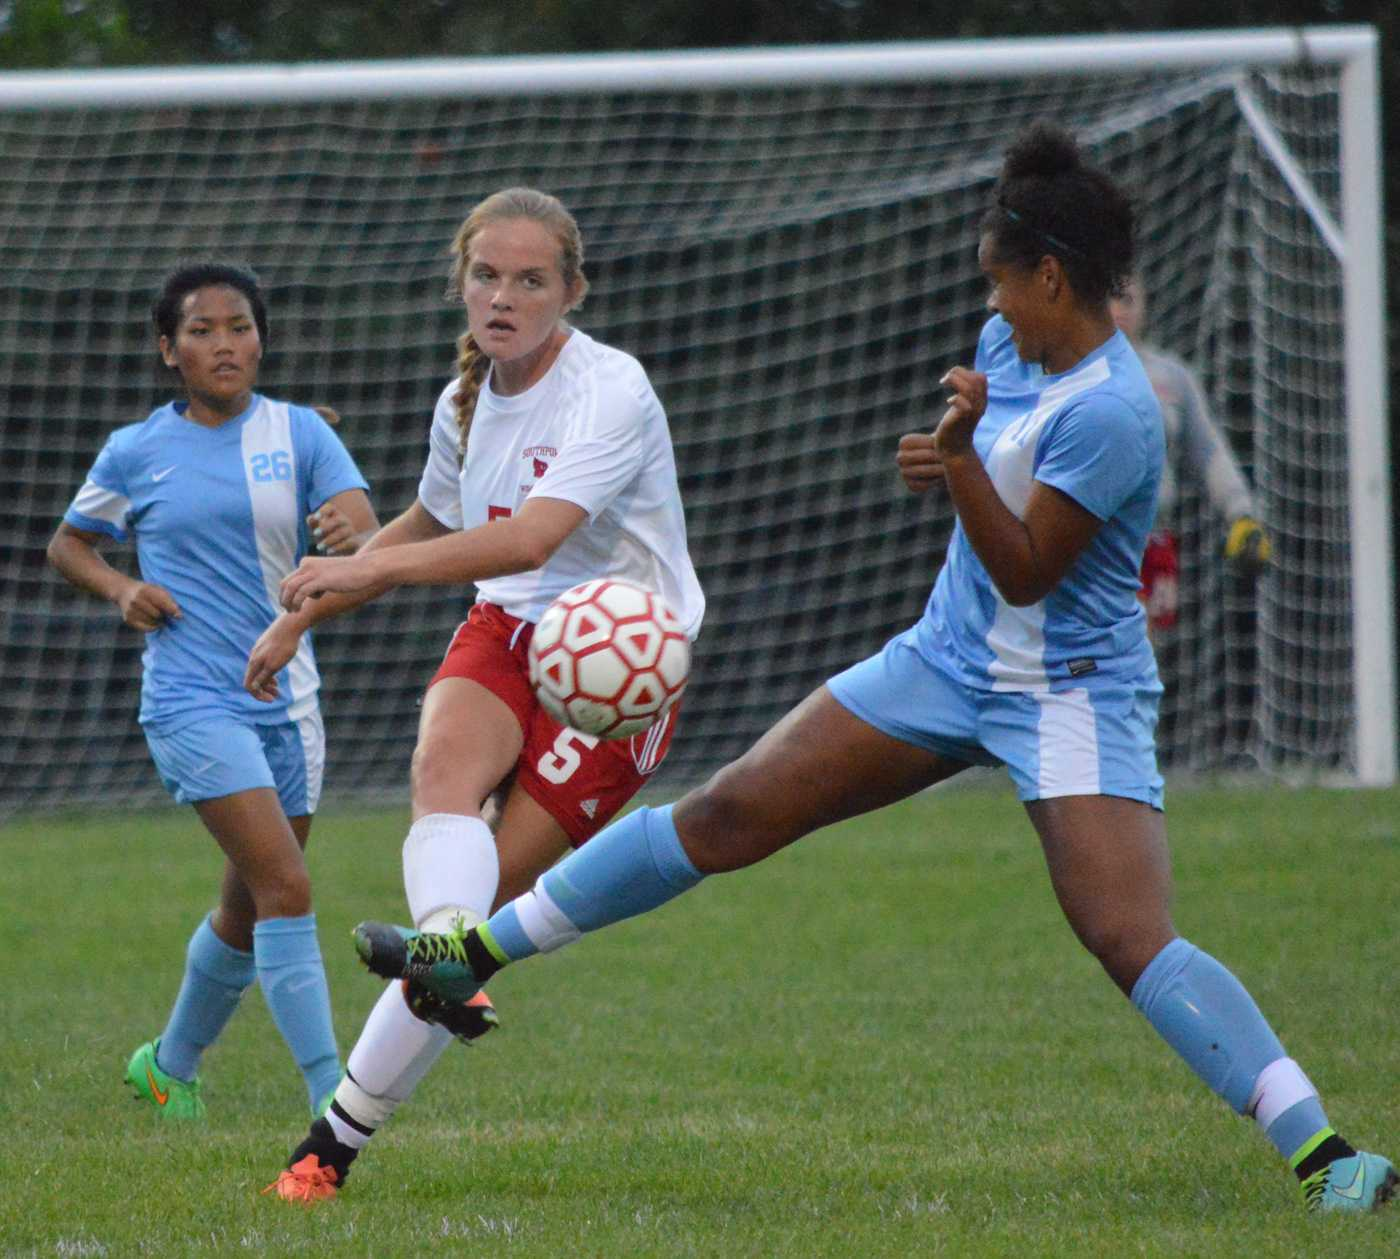 Senior Erin Sullivan defends the ball while going towards the opposite goal. Sullivan is one of the leading scorers this season.